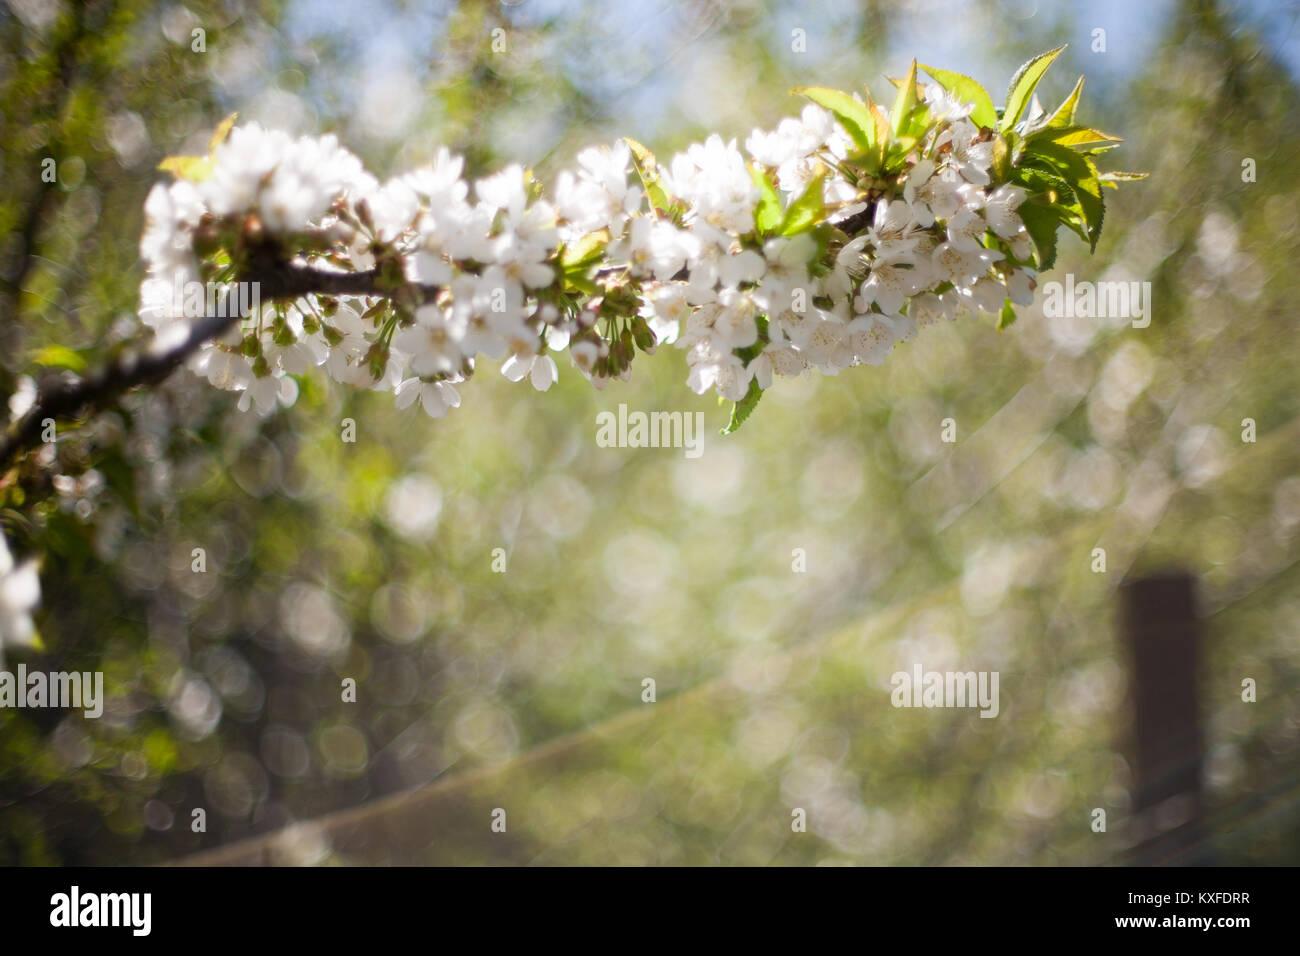 Spring Apple Trees In Blossom Flowers Of Apple White Blooms Of